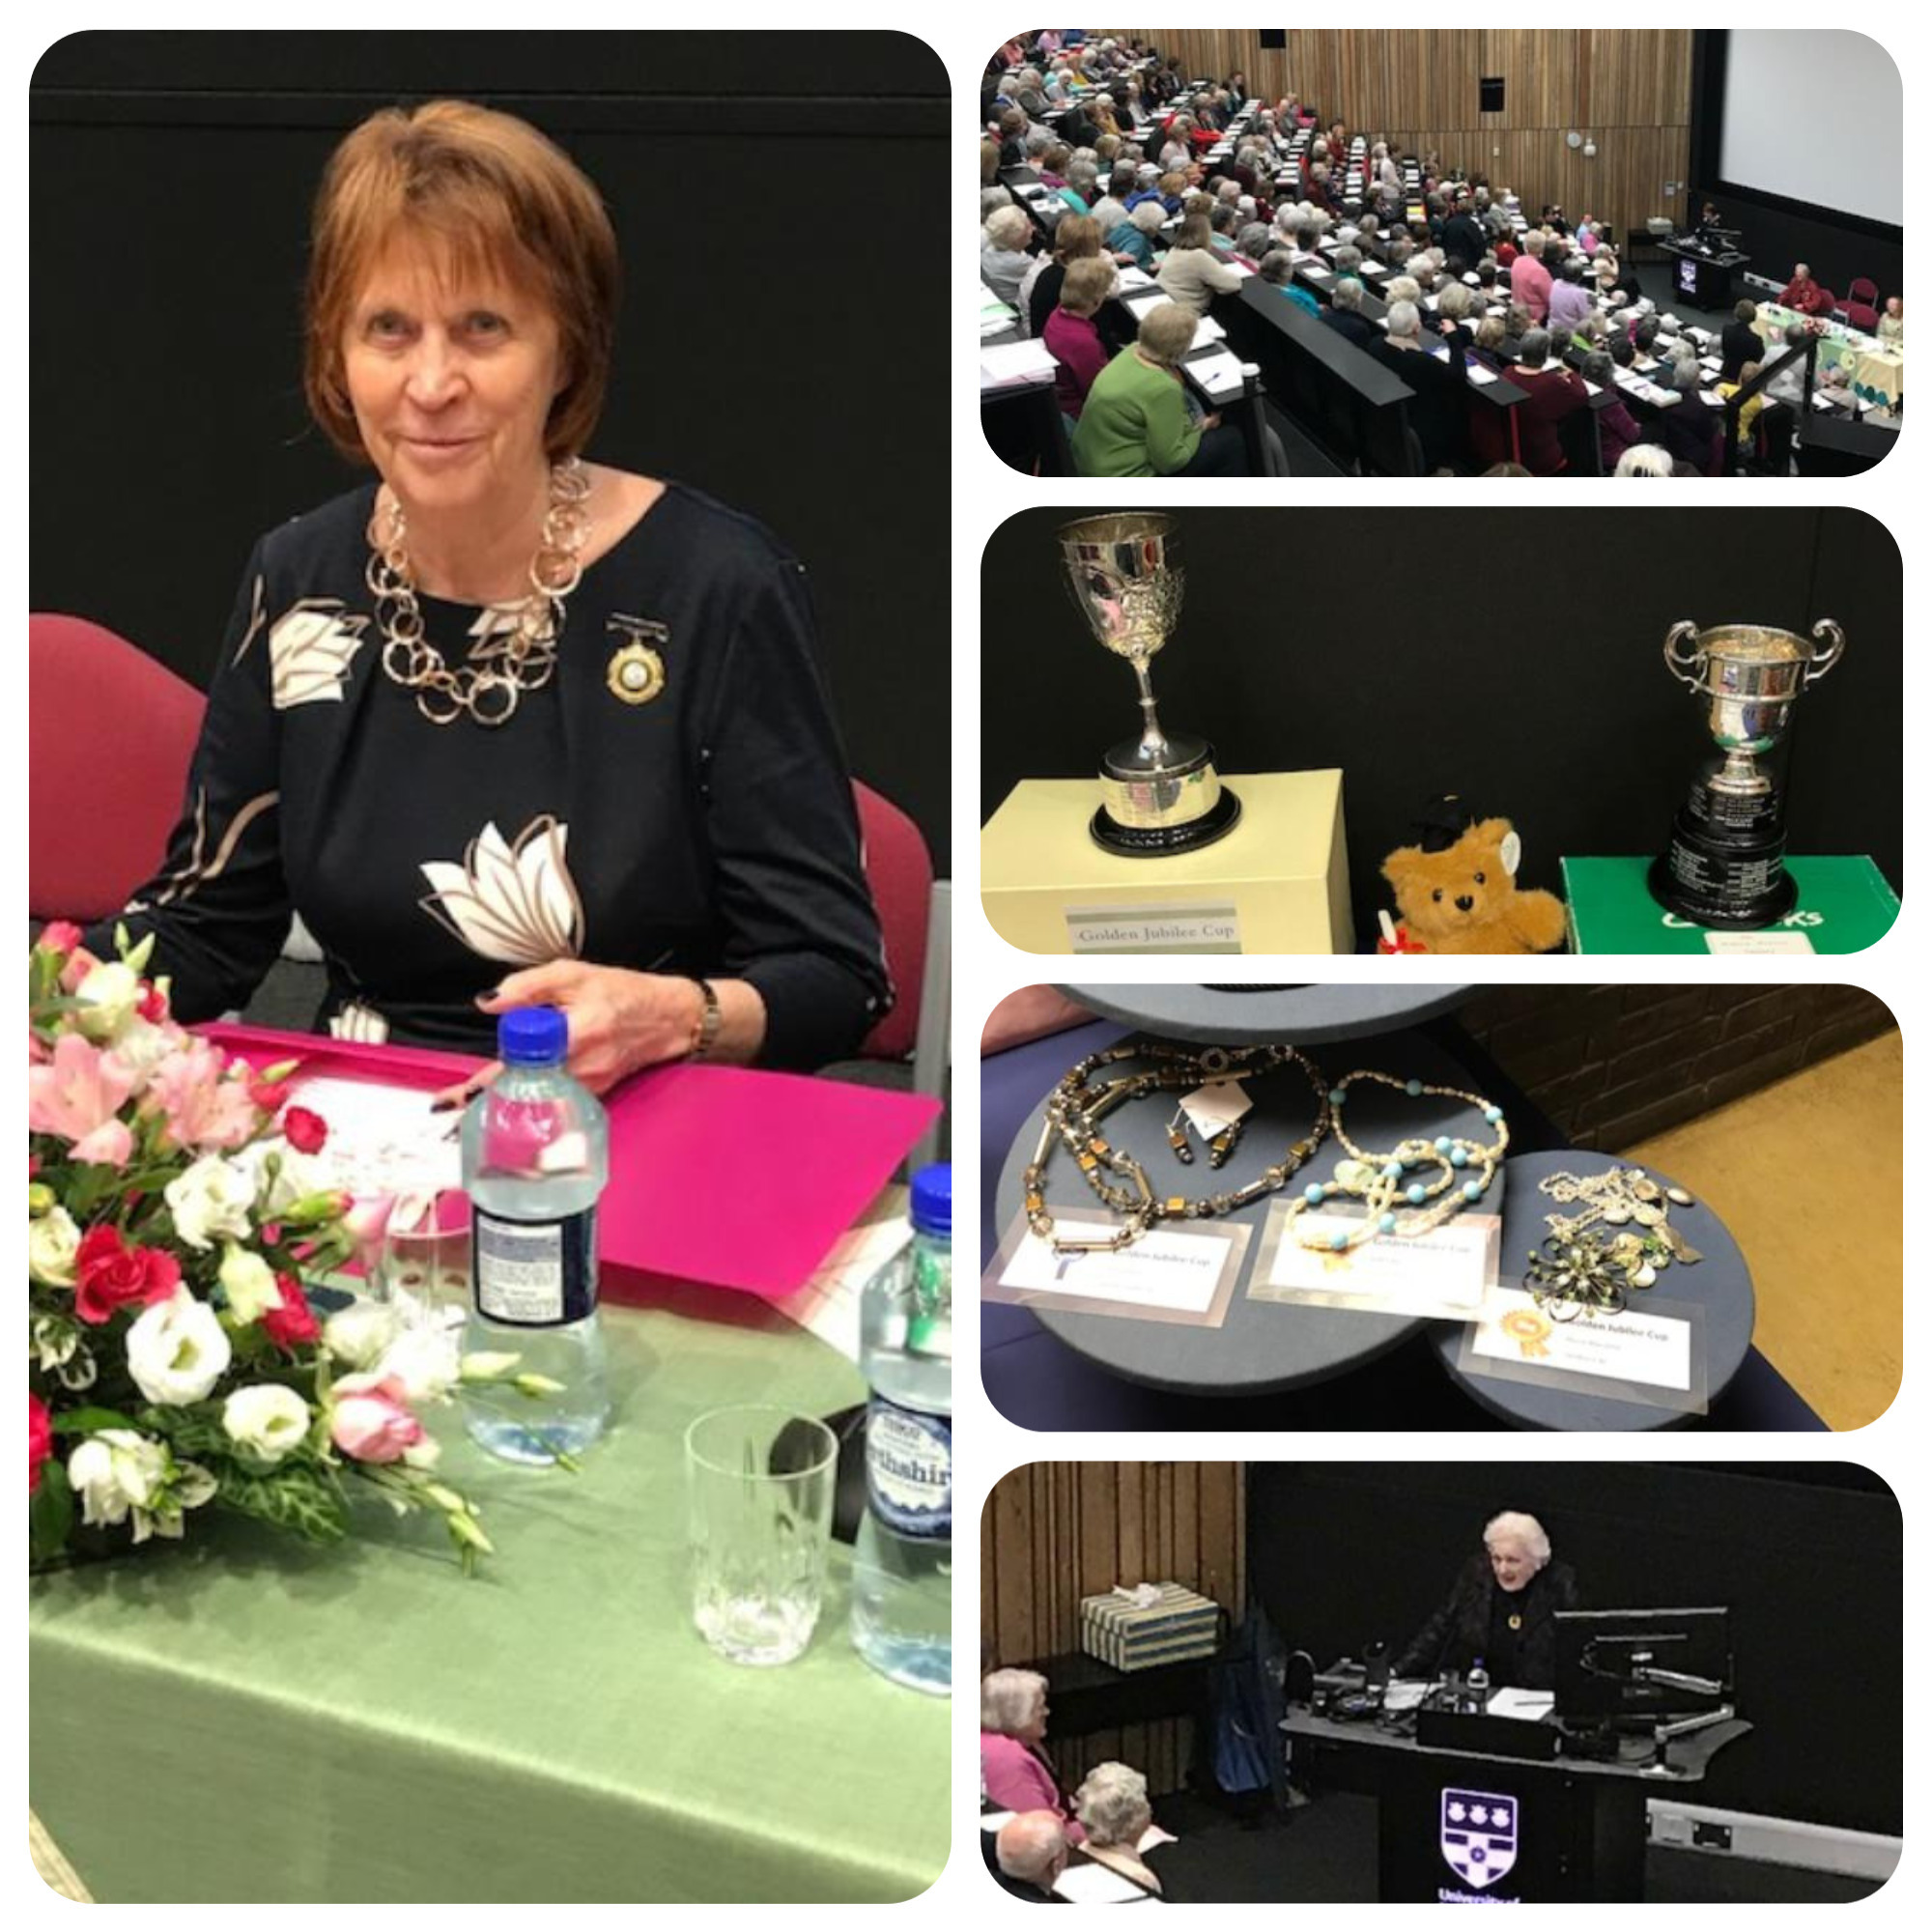 a collage of photos showing the audience and chairman of berkshire